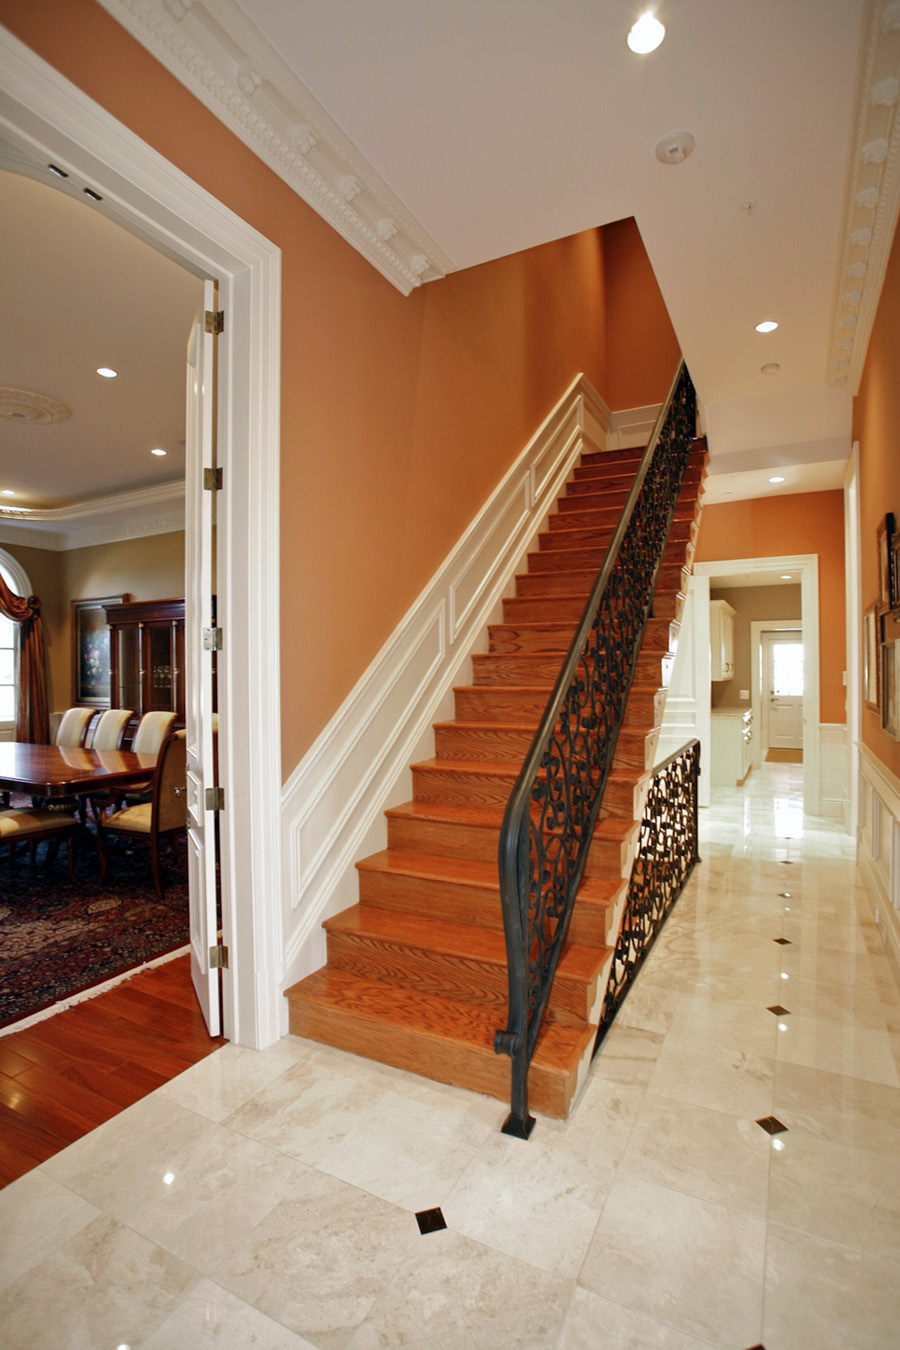 Stairs in mansion in Potomac with orange walls